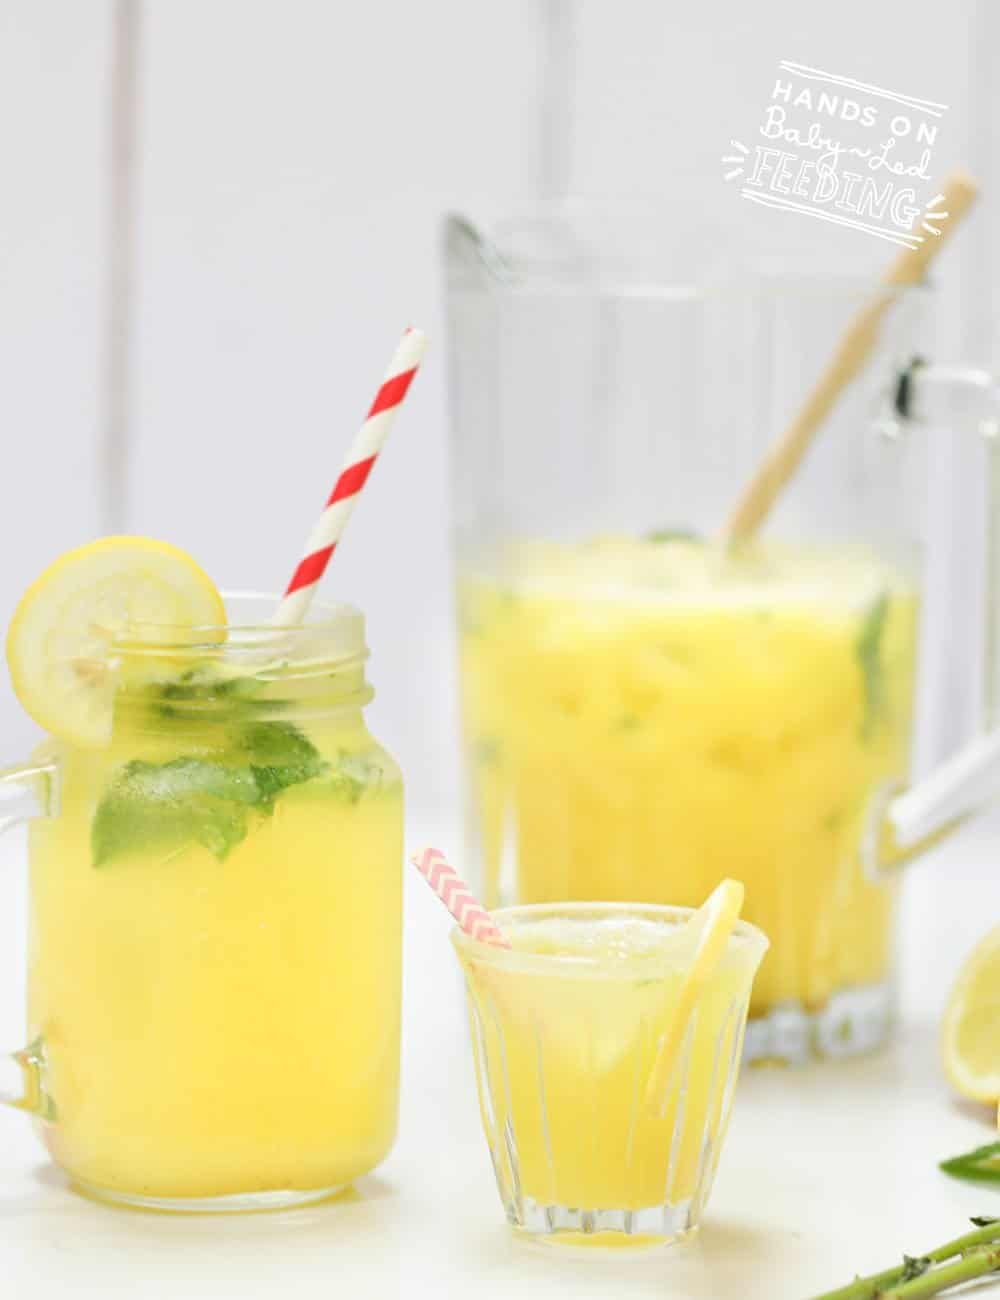 Sugar Free Lemonade Recipe Images